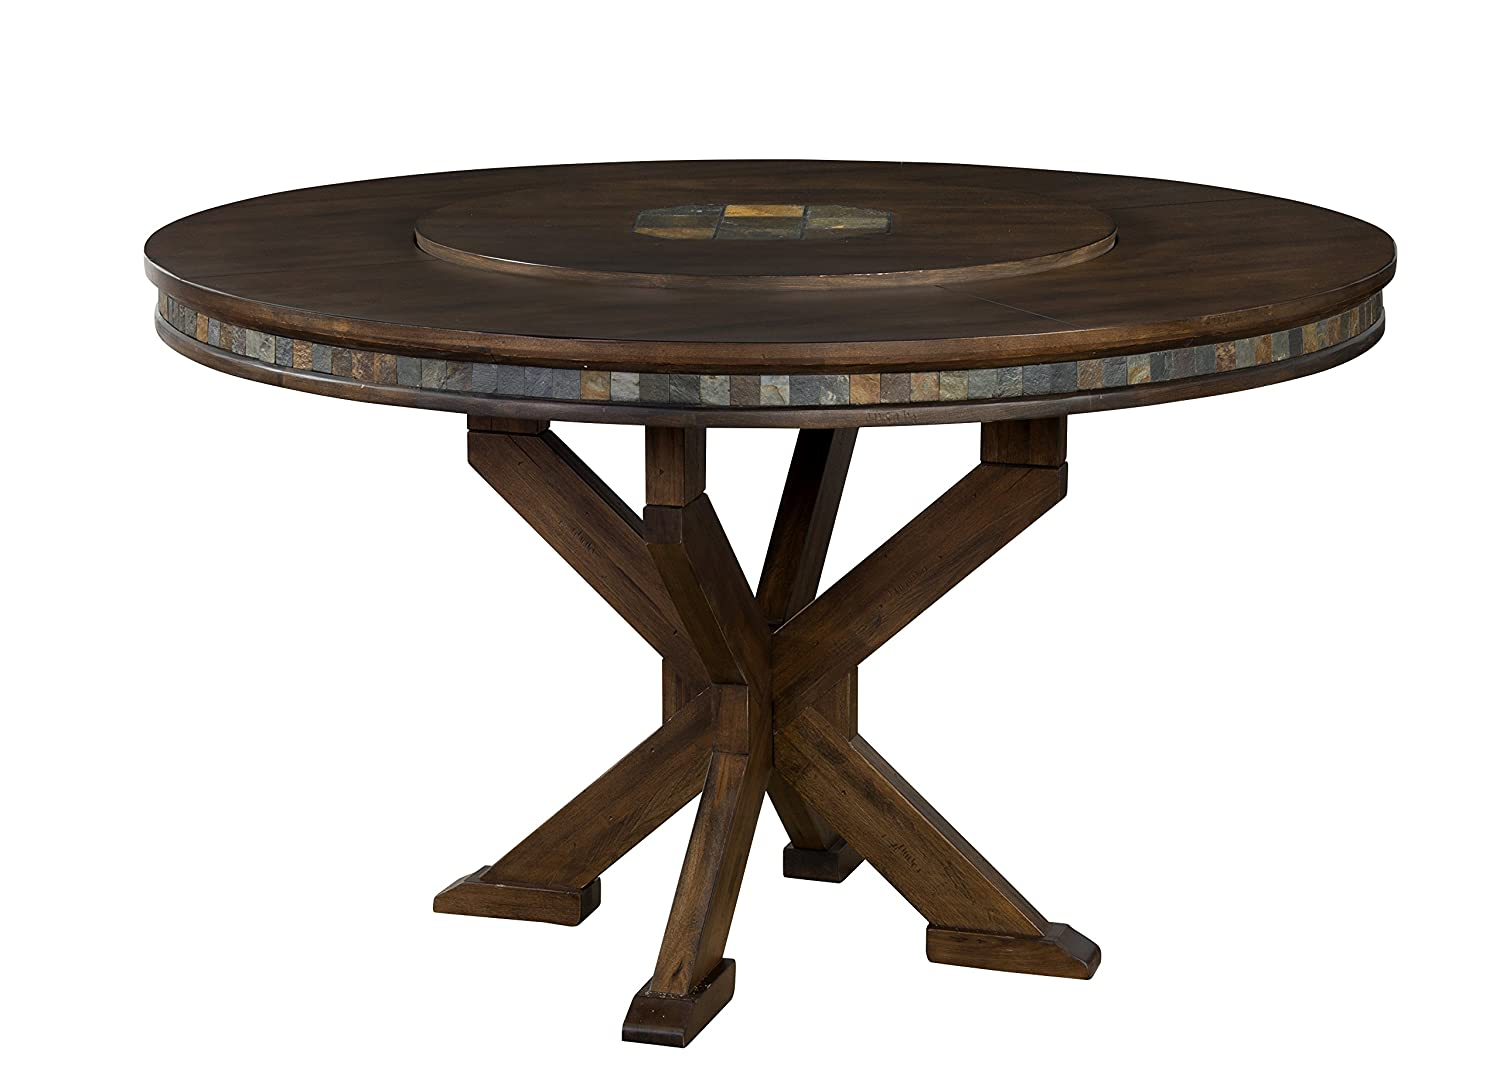 amazoncom sunny designs savannah round table with lazy susan 60inch tables - 60 Inch Round Dining Table